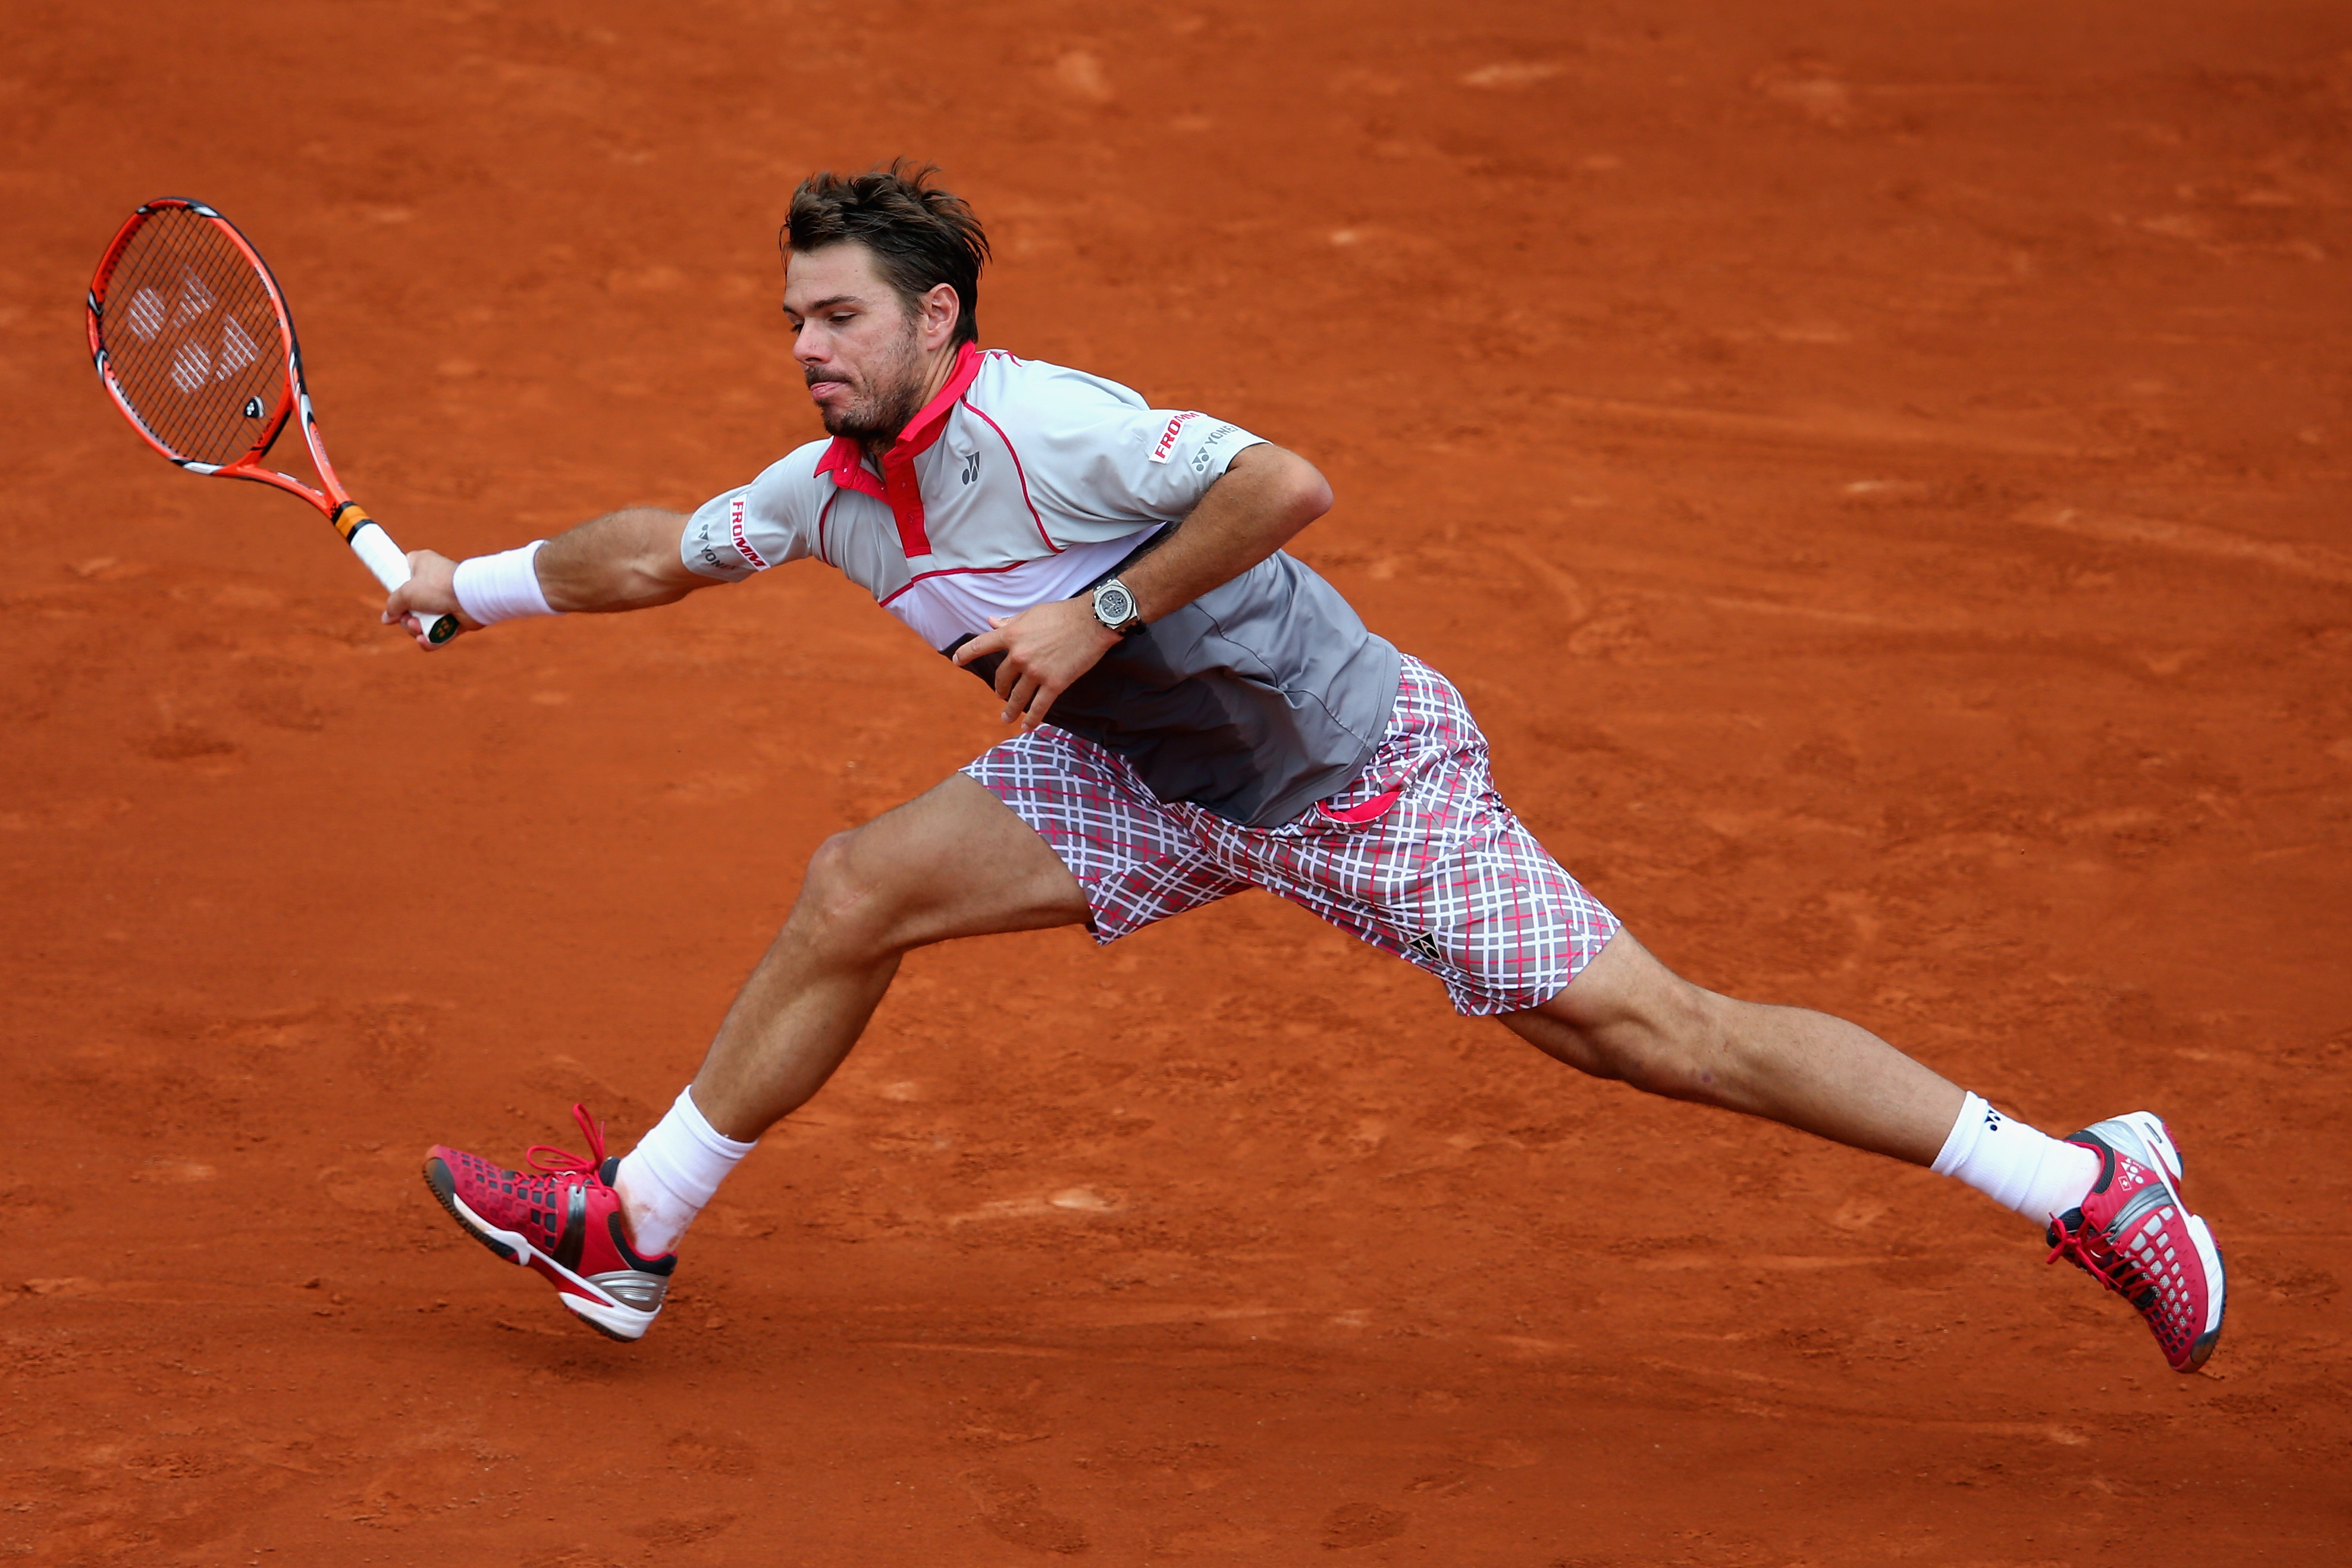 A first round loser last year, Stan Wawrinka put on a clinic to beat Marcel Ilhan 6-3, 6-2, 6-3.